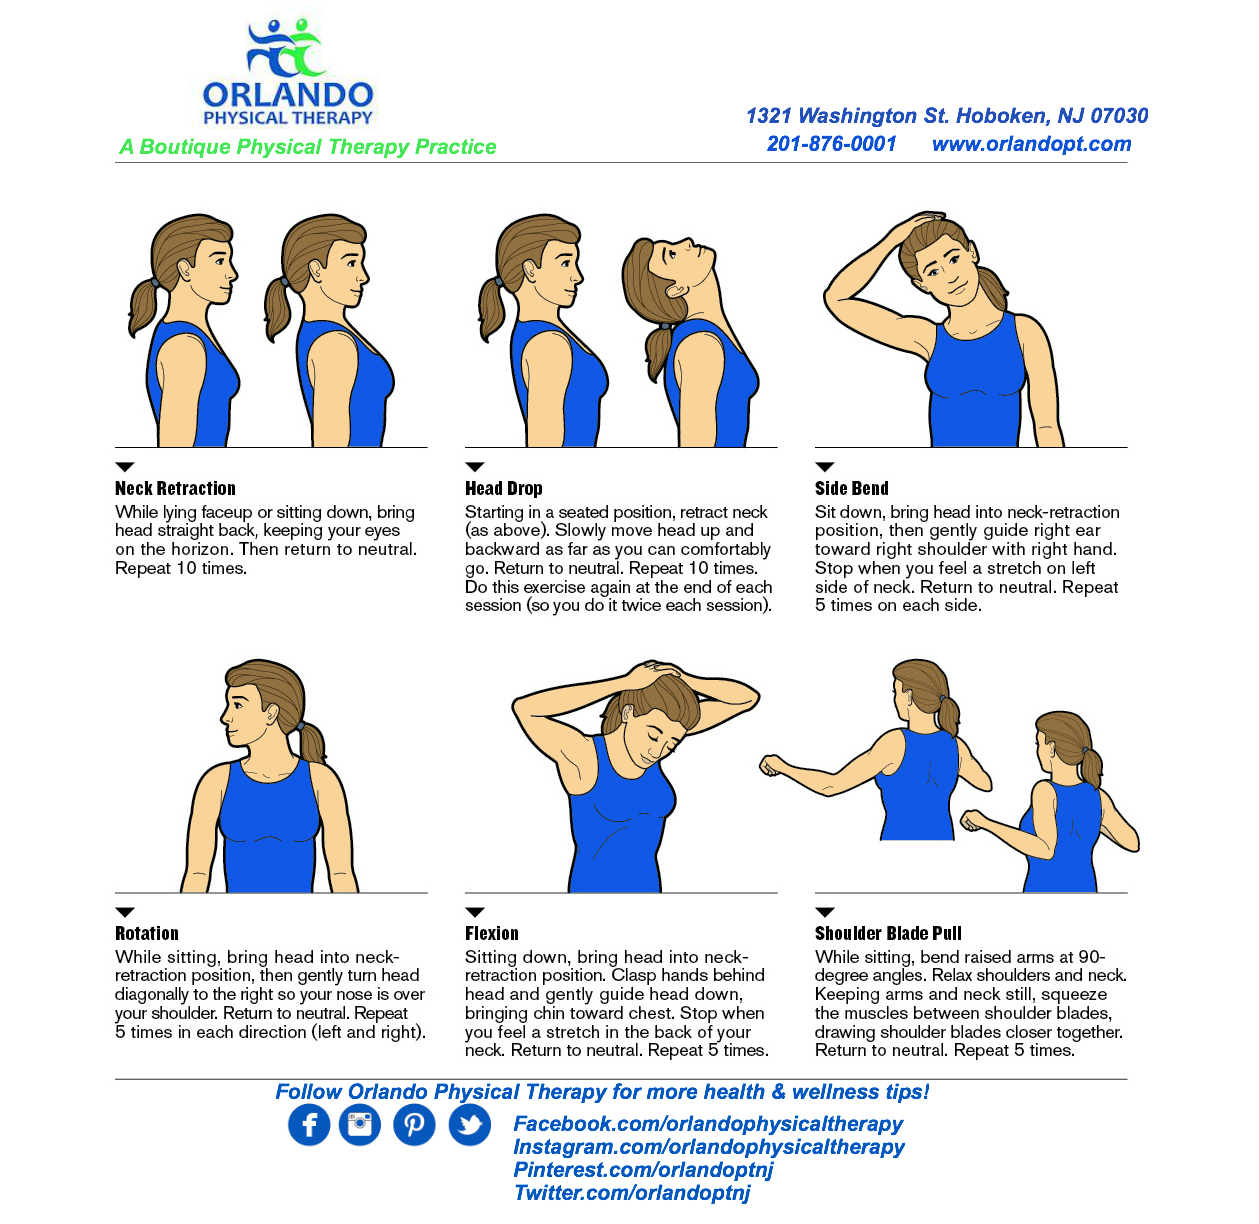 6 Easy Moves to Relieve Neck Tension | Orlando Physical ...